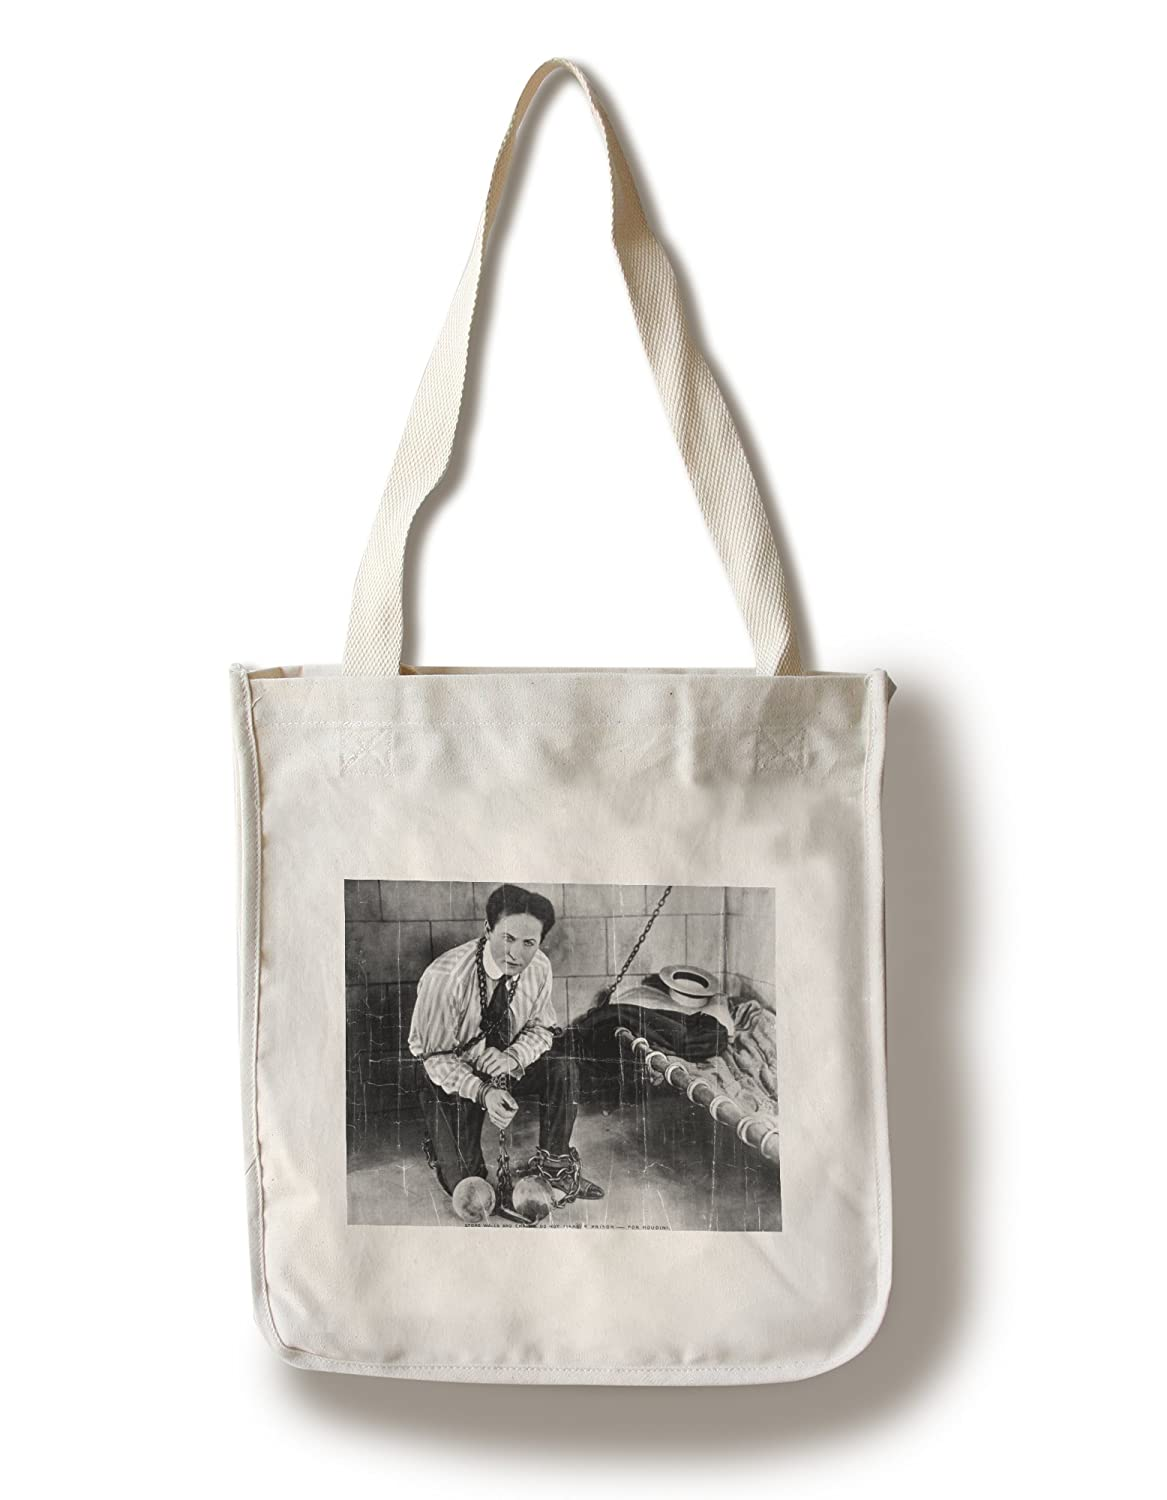 ハリーフーディーニabout to escapeからPrison写真 Canvas Tote Bag LANT-3674-TT B0182QV8P4 Canvas Tote Bag